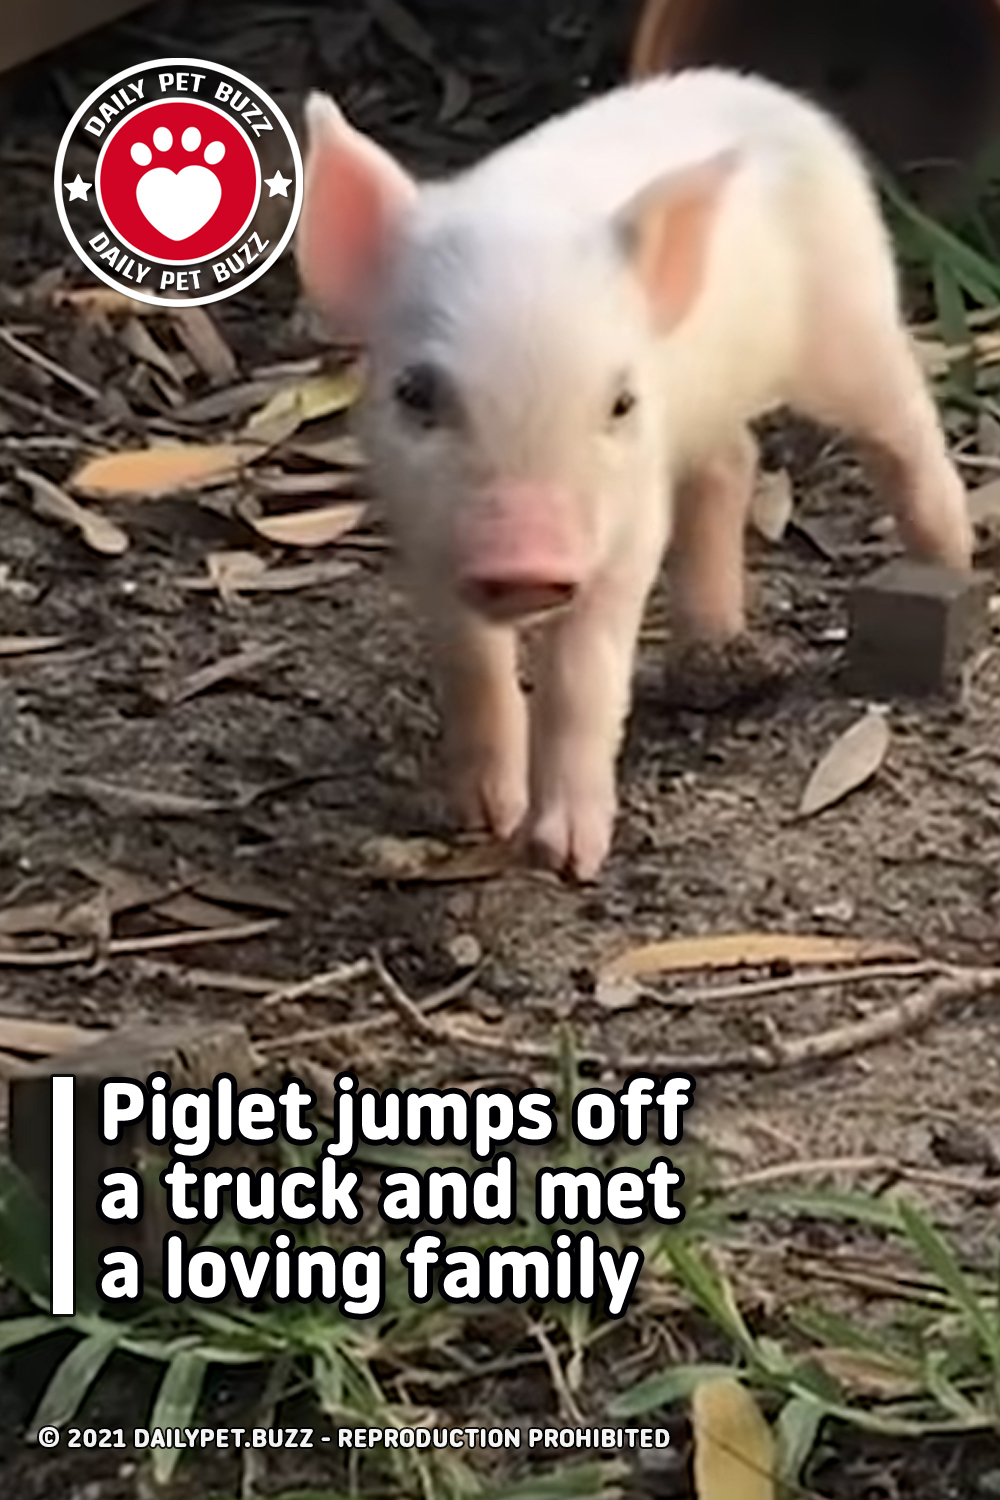 Piglet jumps off a truck and met a loving family